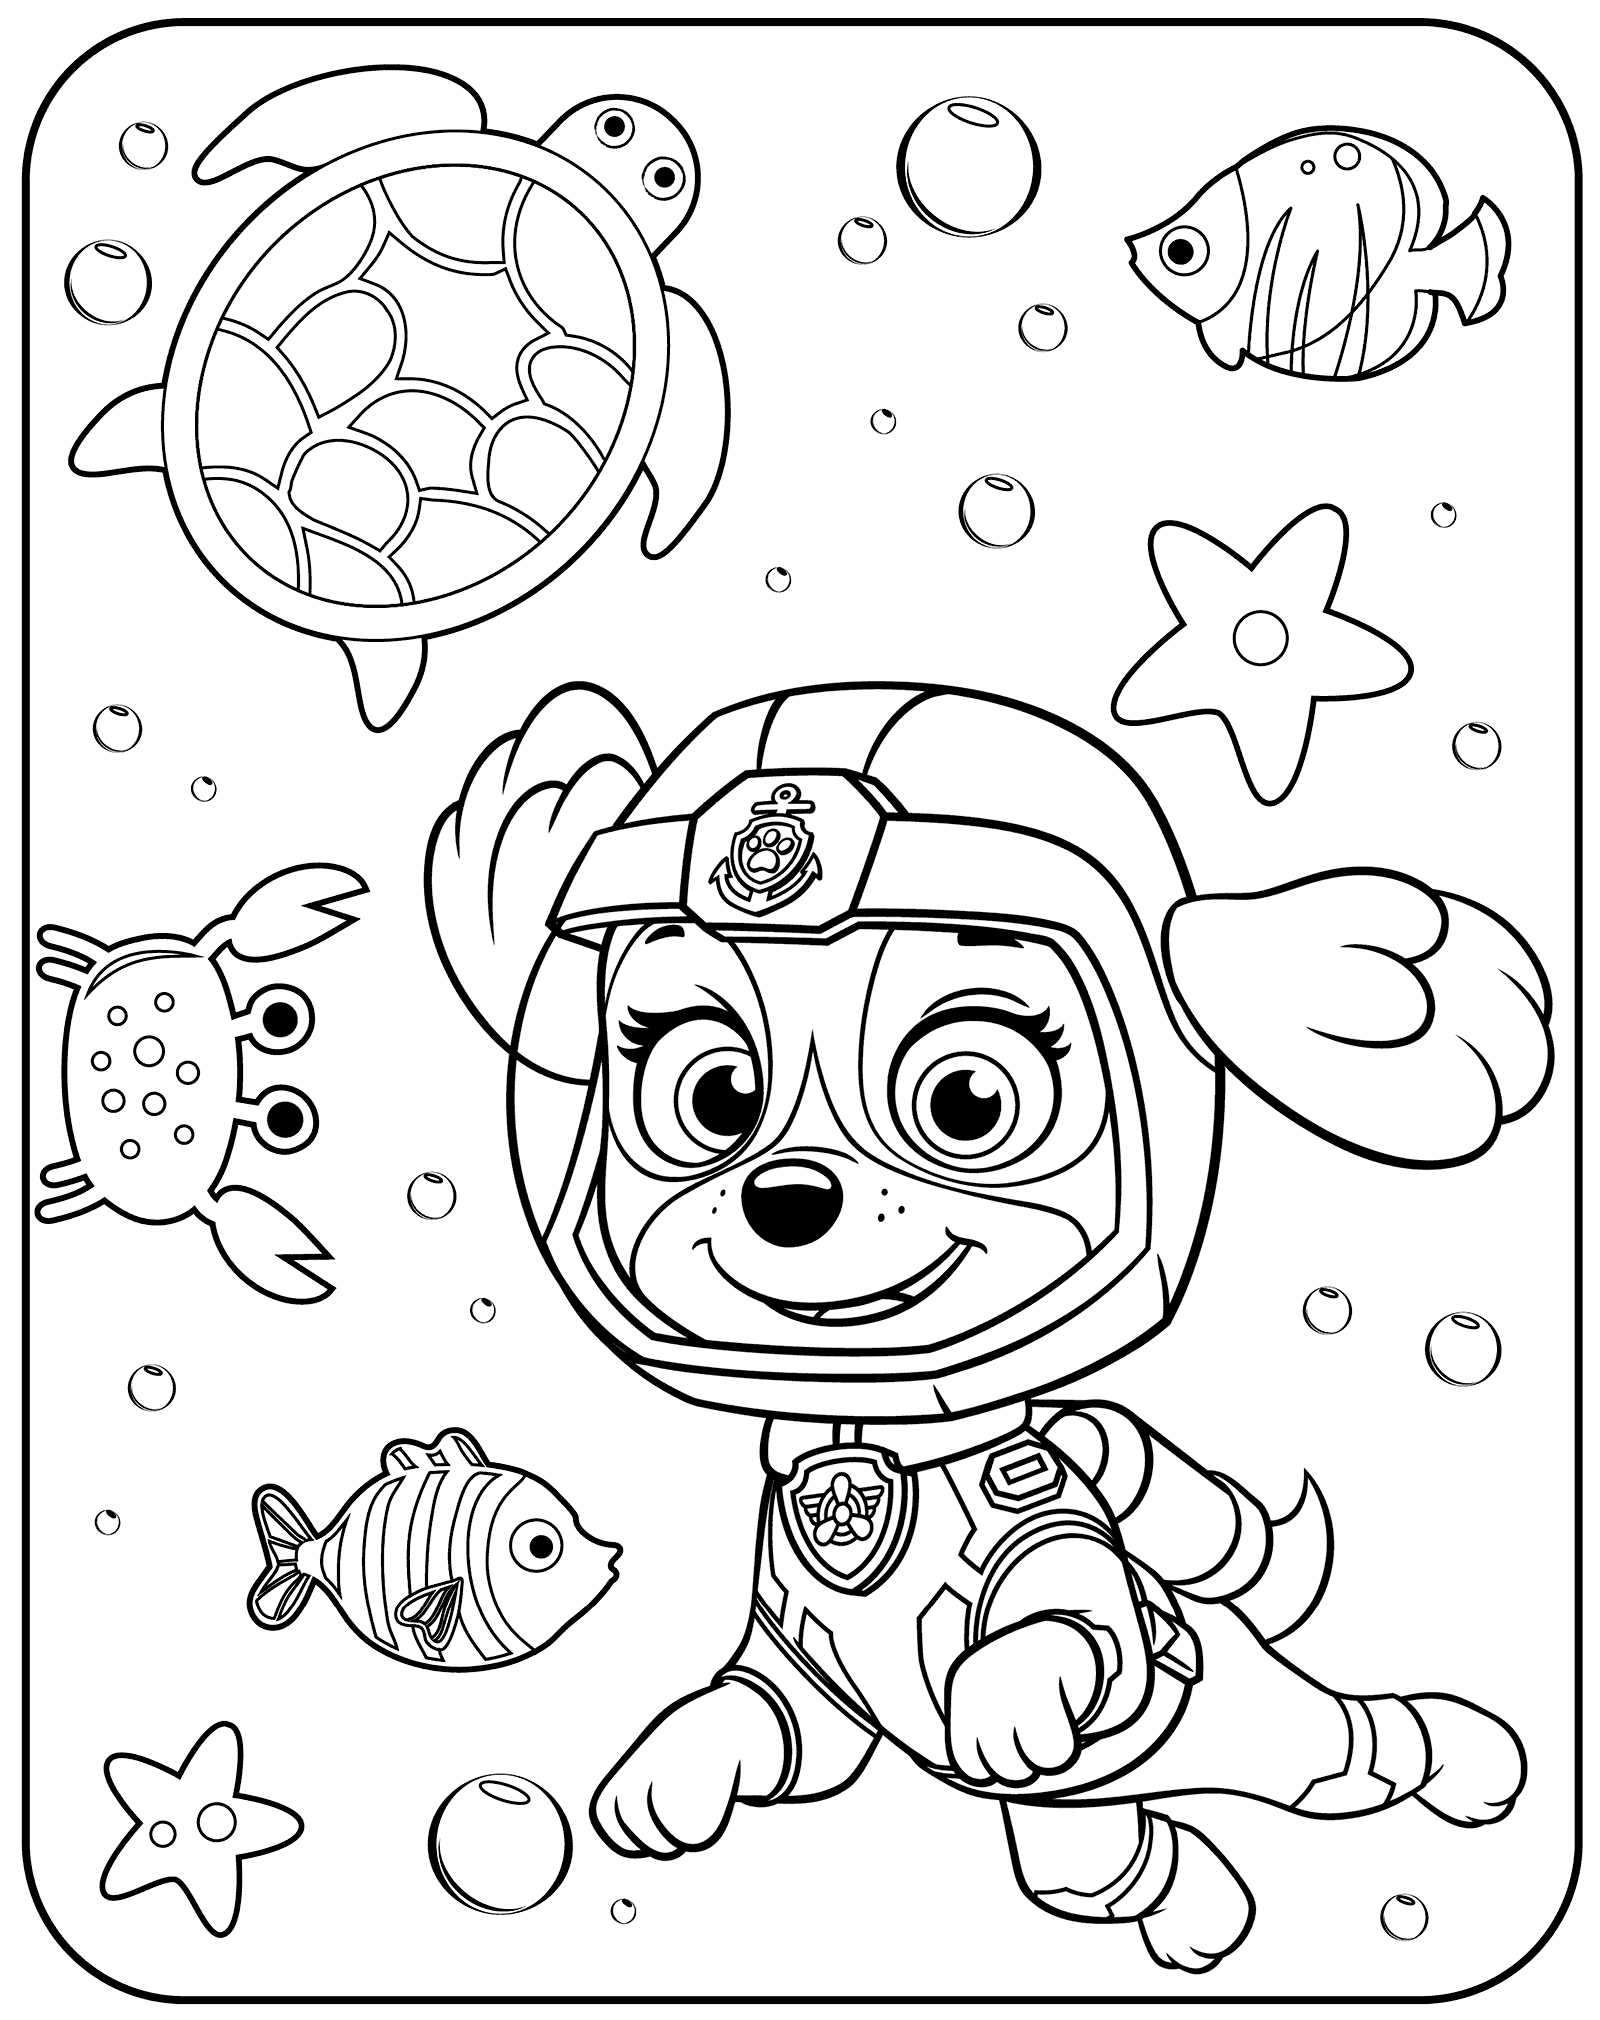 Paw Patrol Coloring Pages – coloring.rocks!